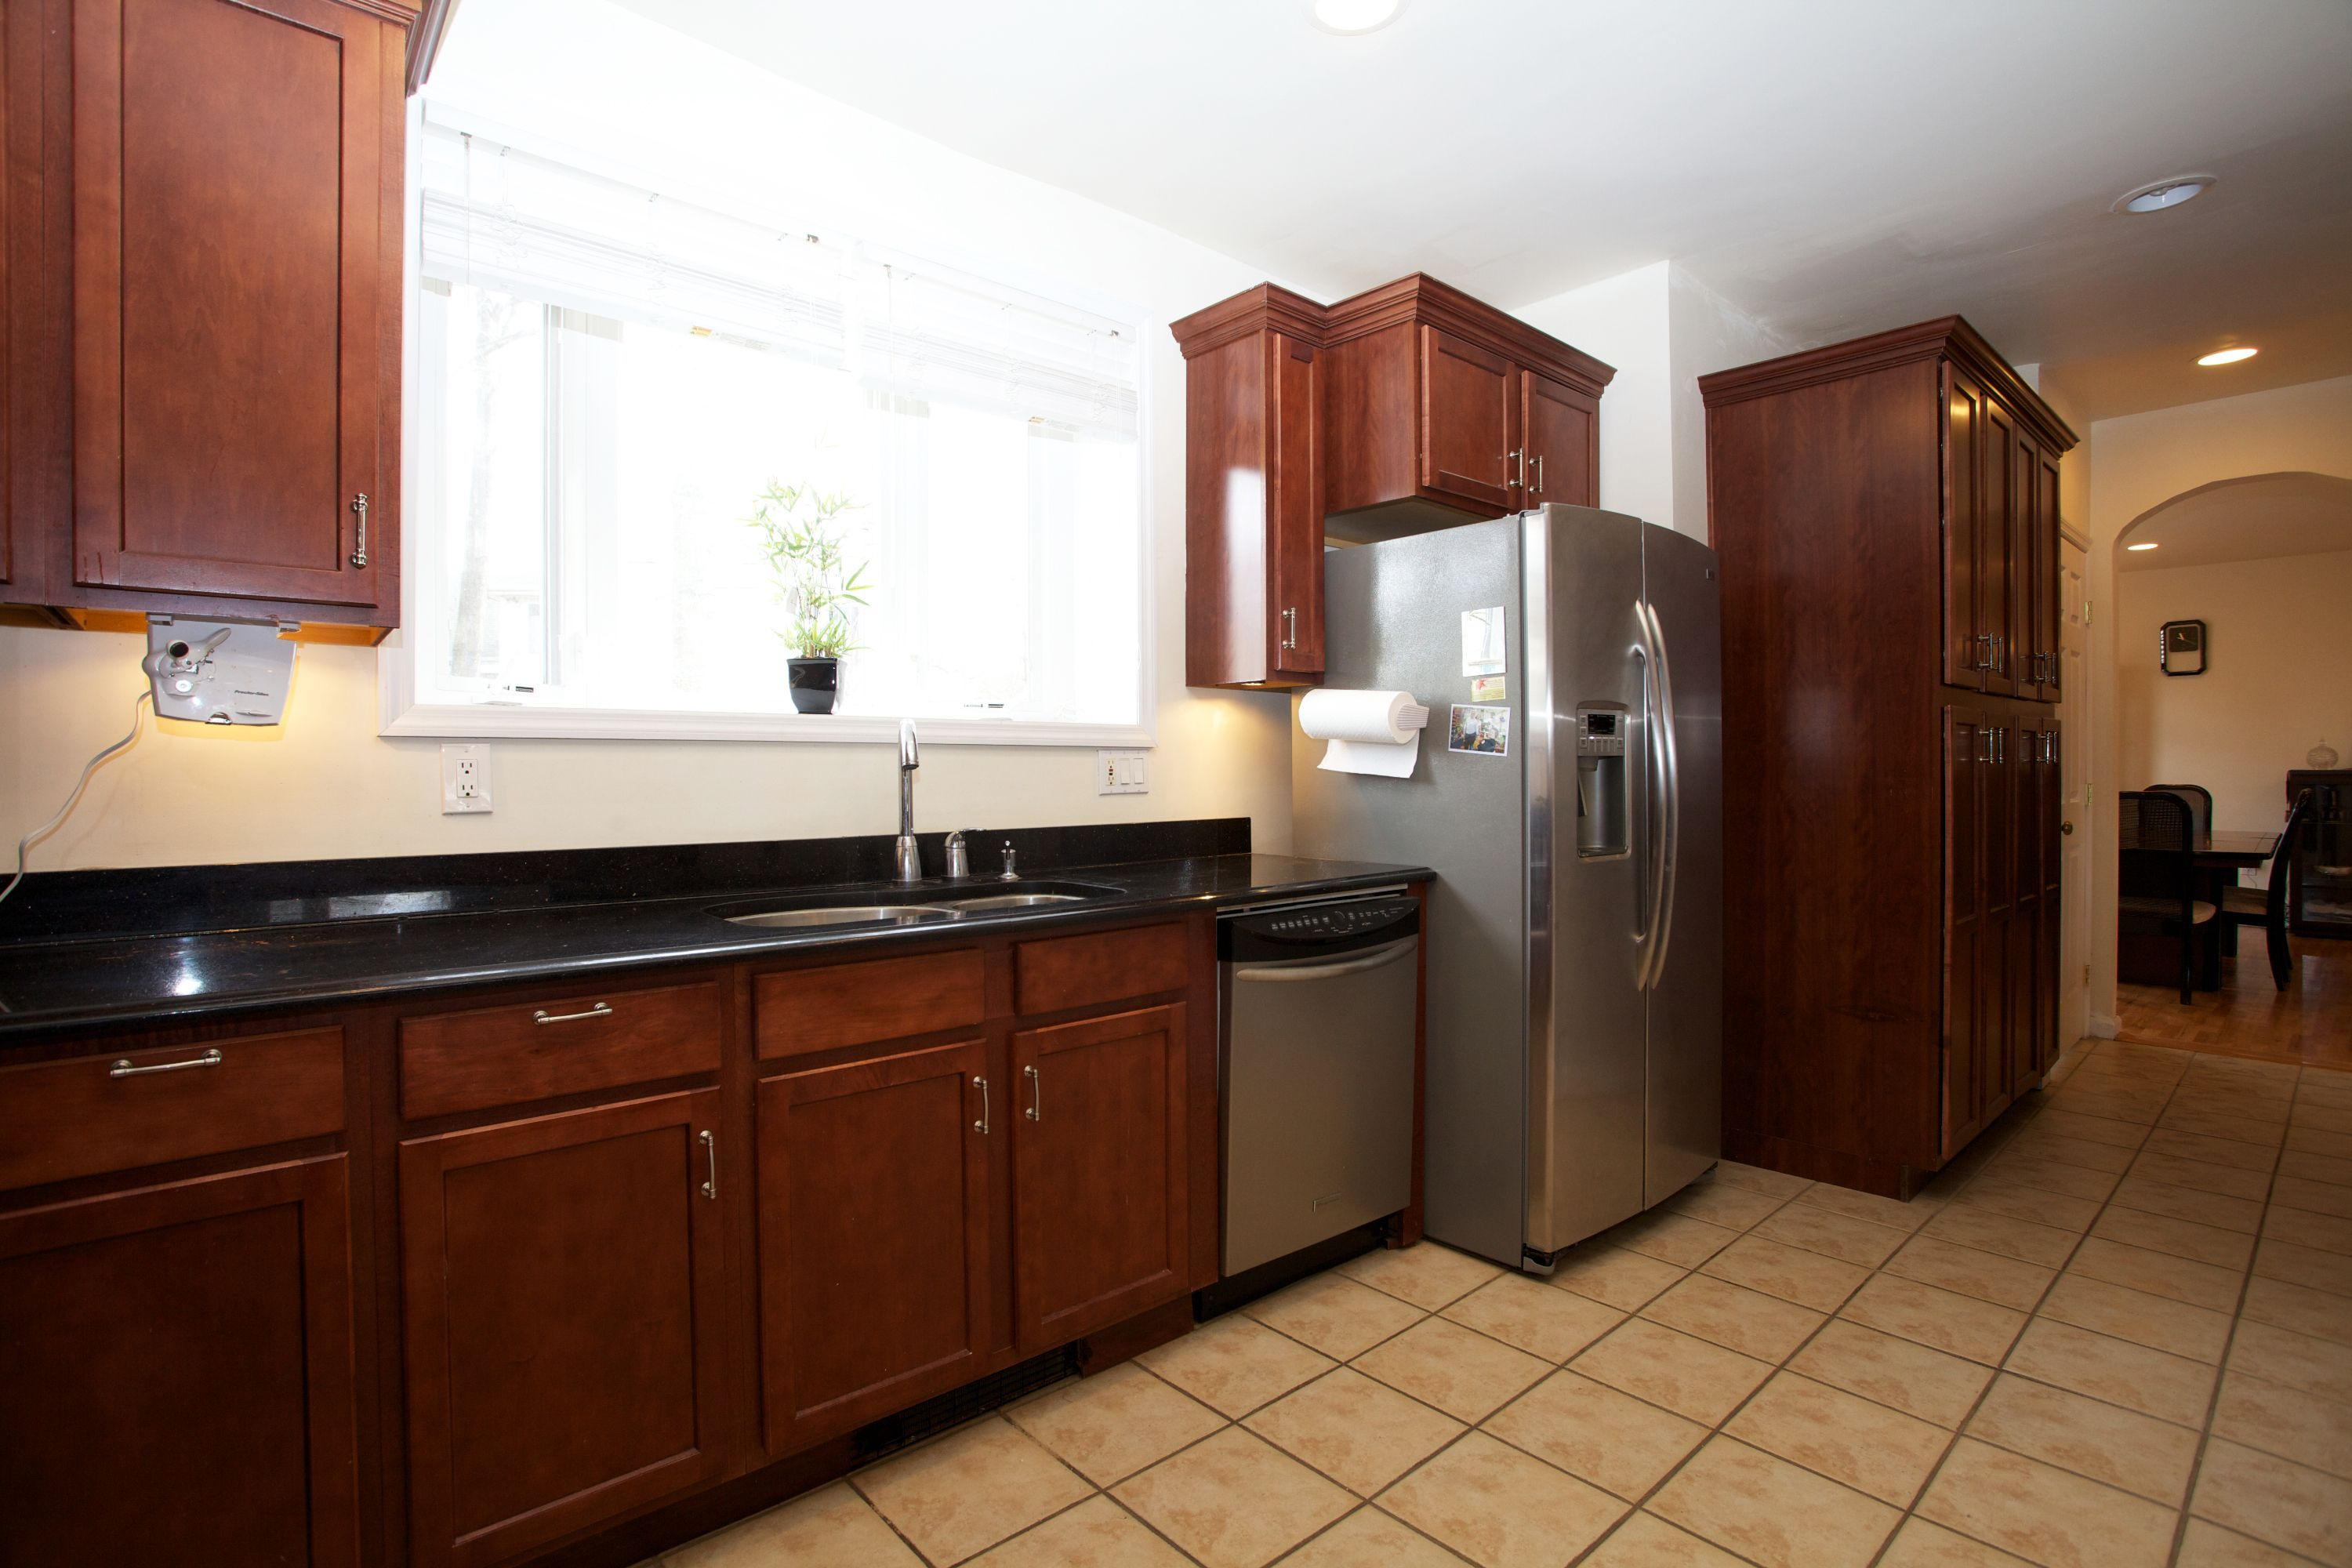 Kitchen In The 4 Bedroom 4 Bathroom Colonial In Teaneck Nj